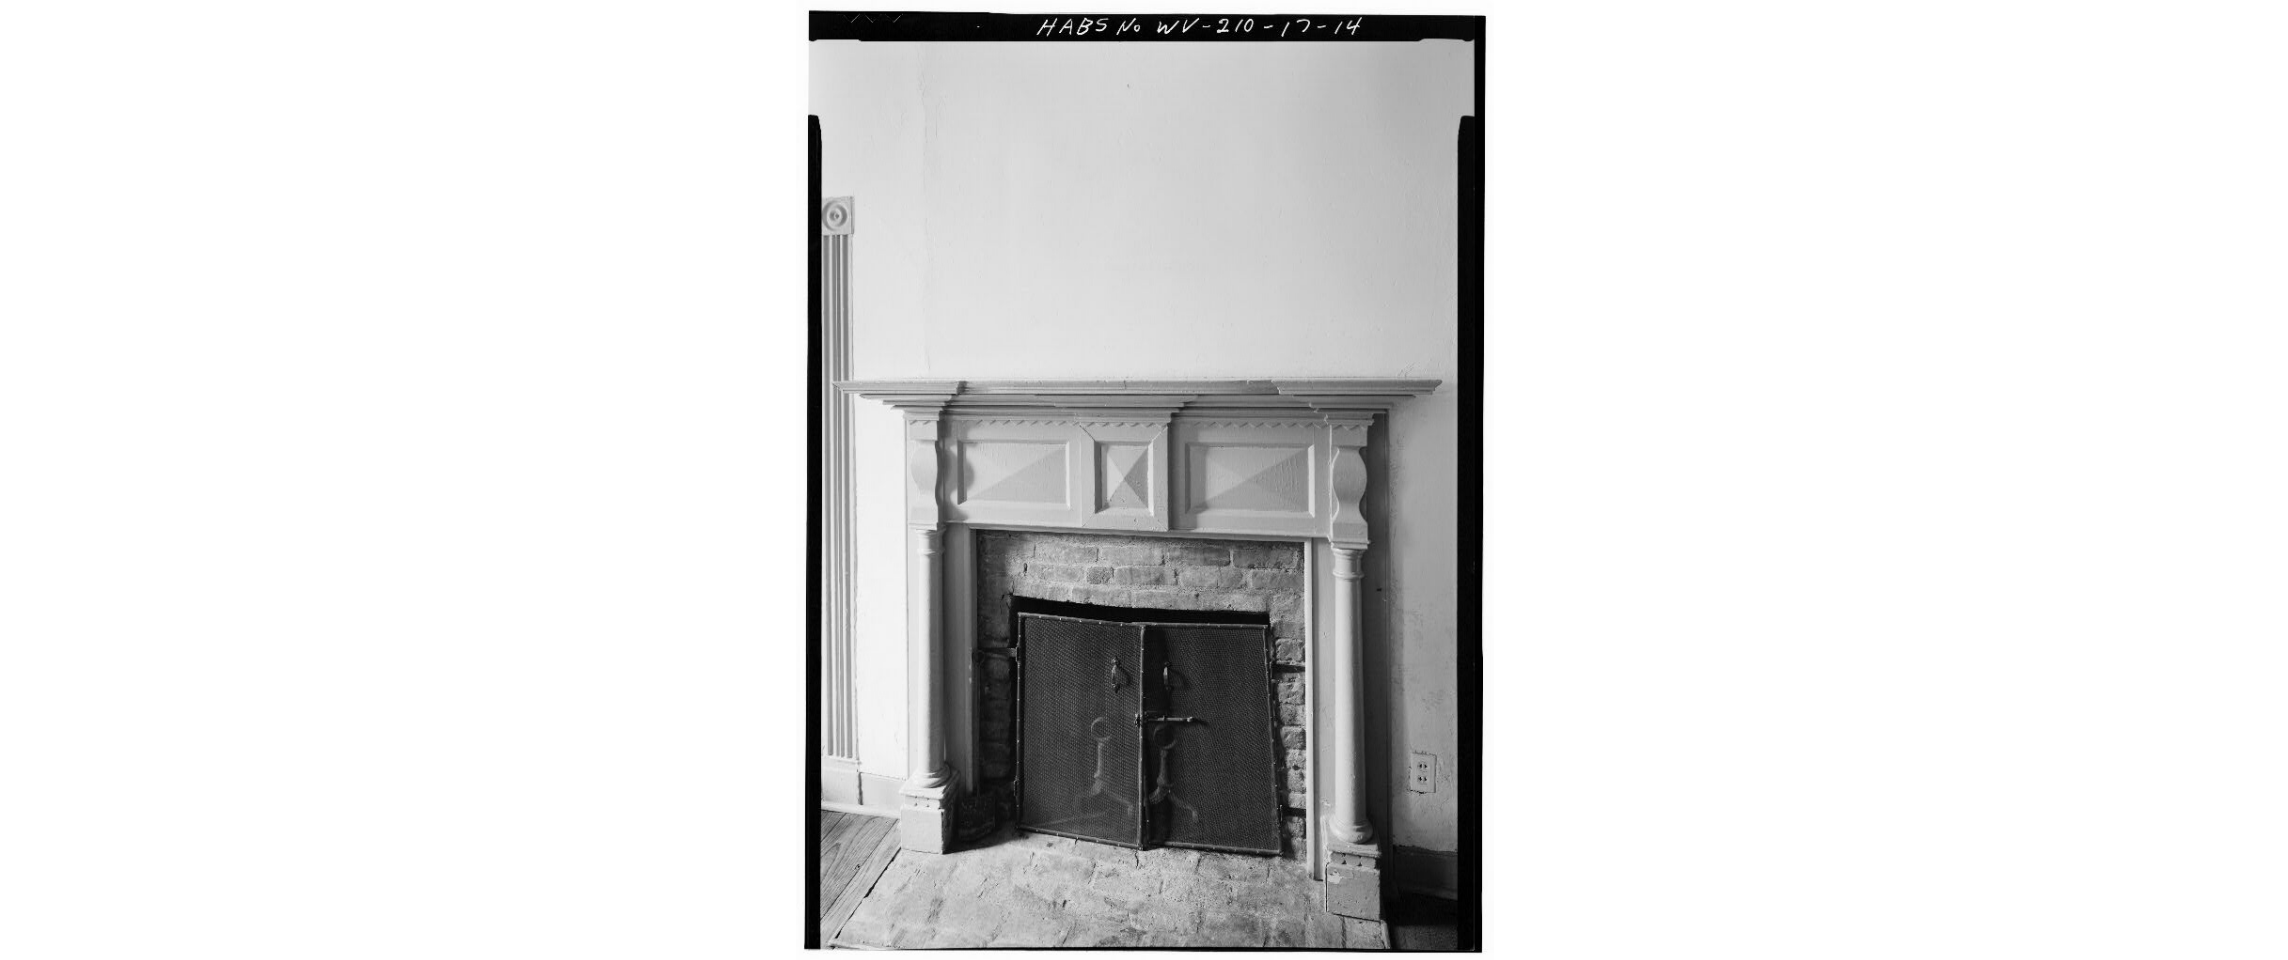 Original fireplace on the house's first floor, circa 1980